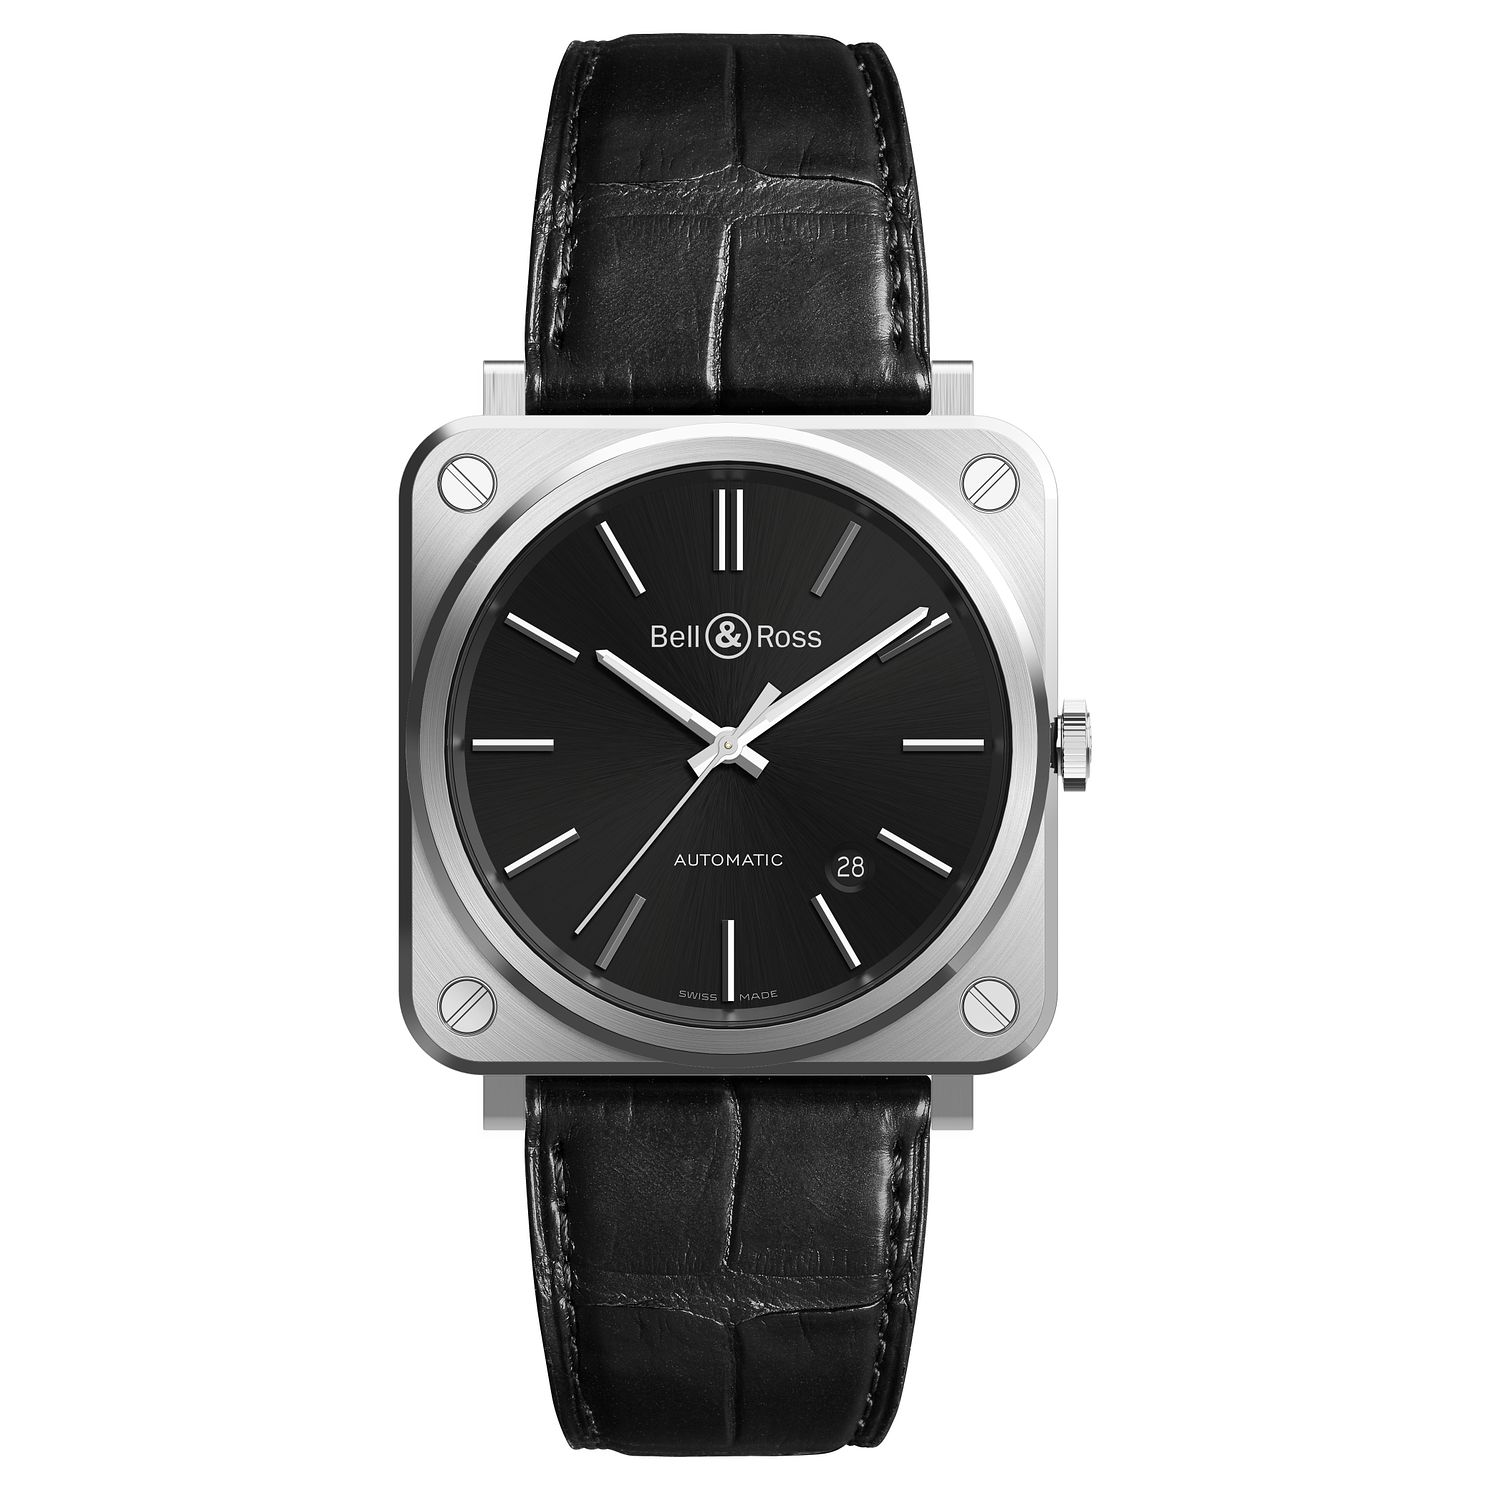 Bell & Ross BRS-92 Men's Stainless Steel Black Strap Watch - Product number 6957110